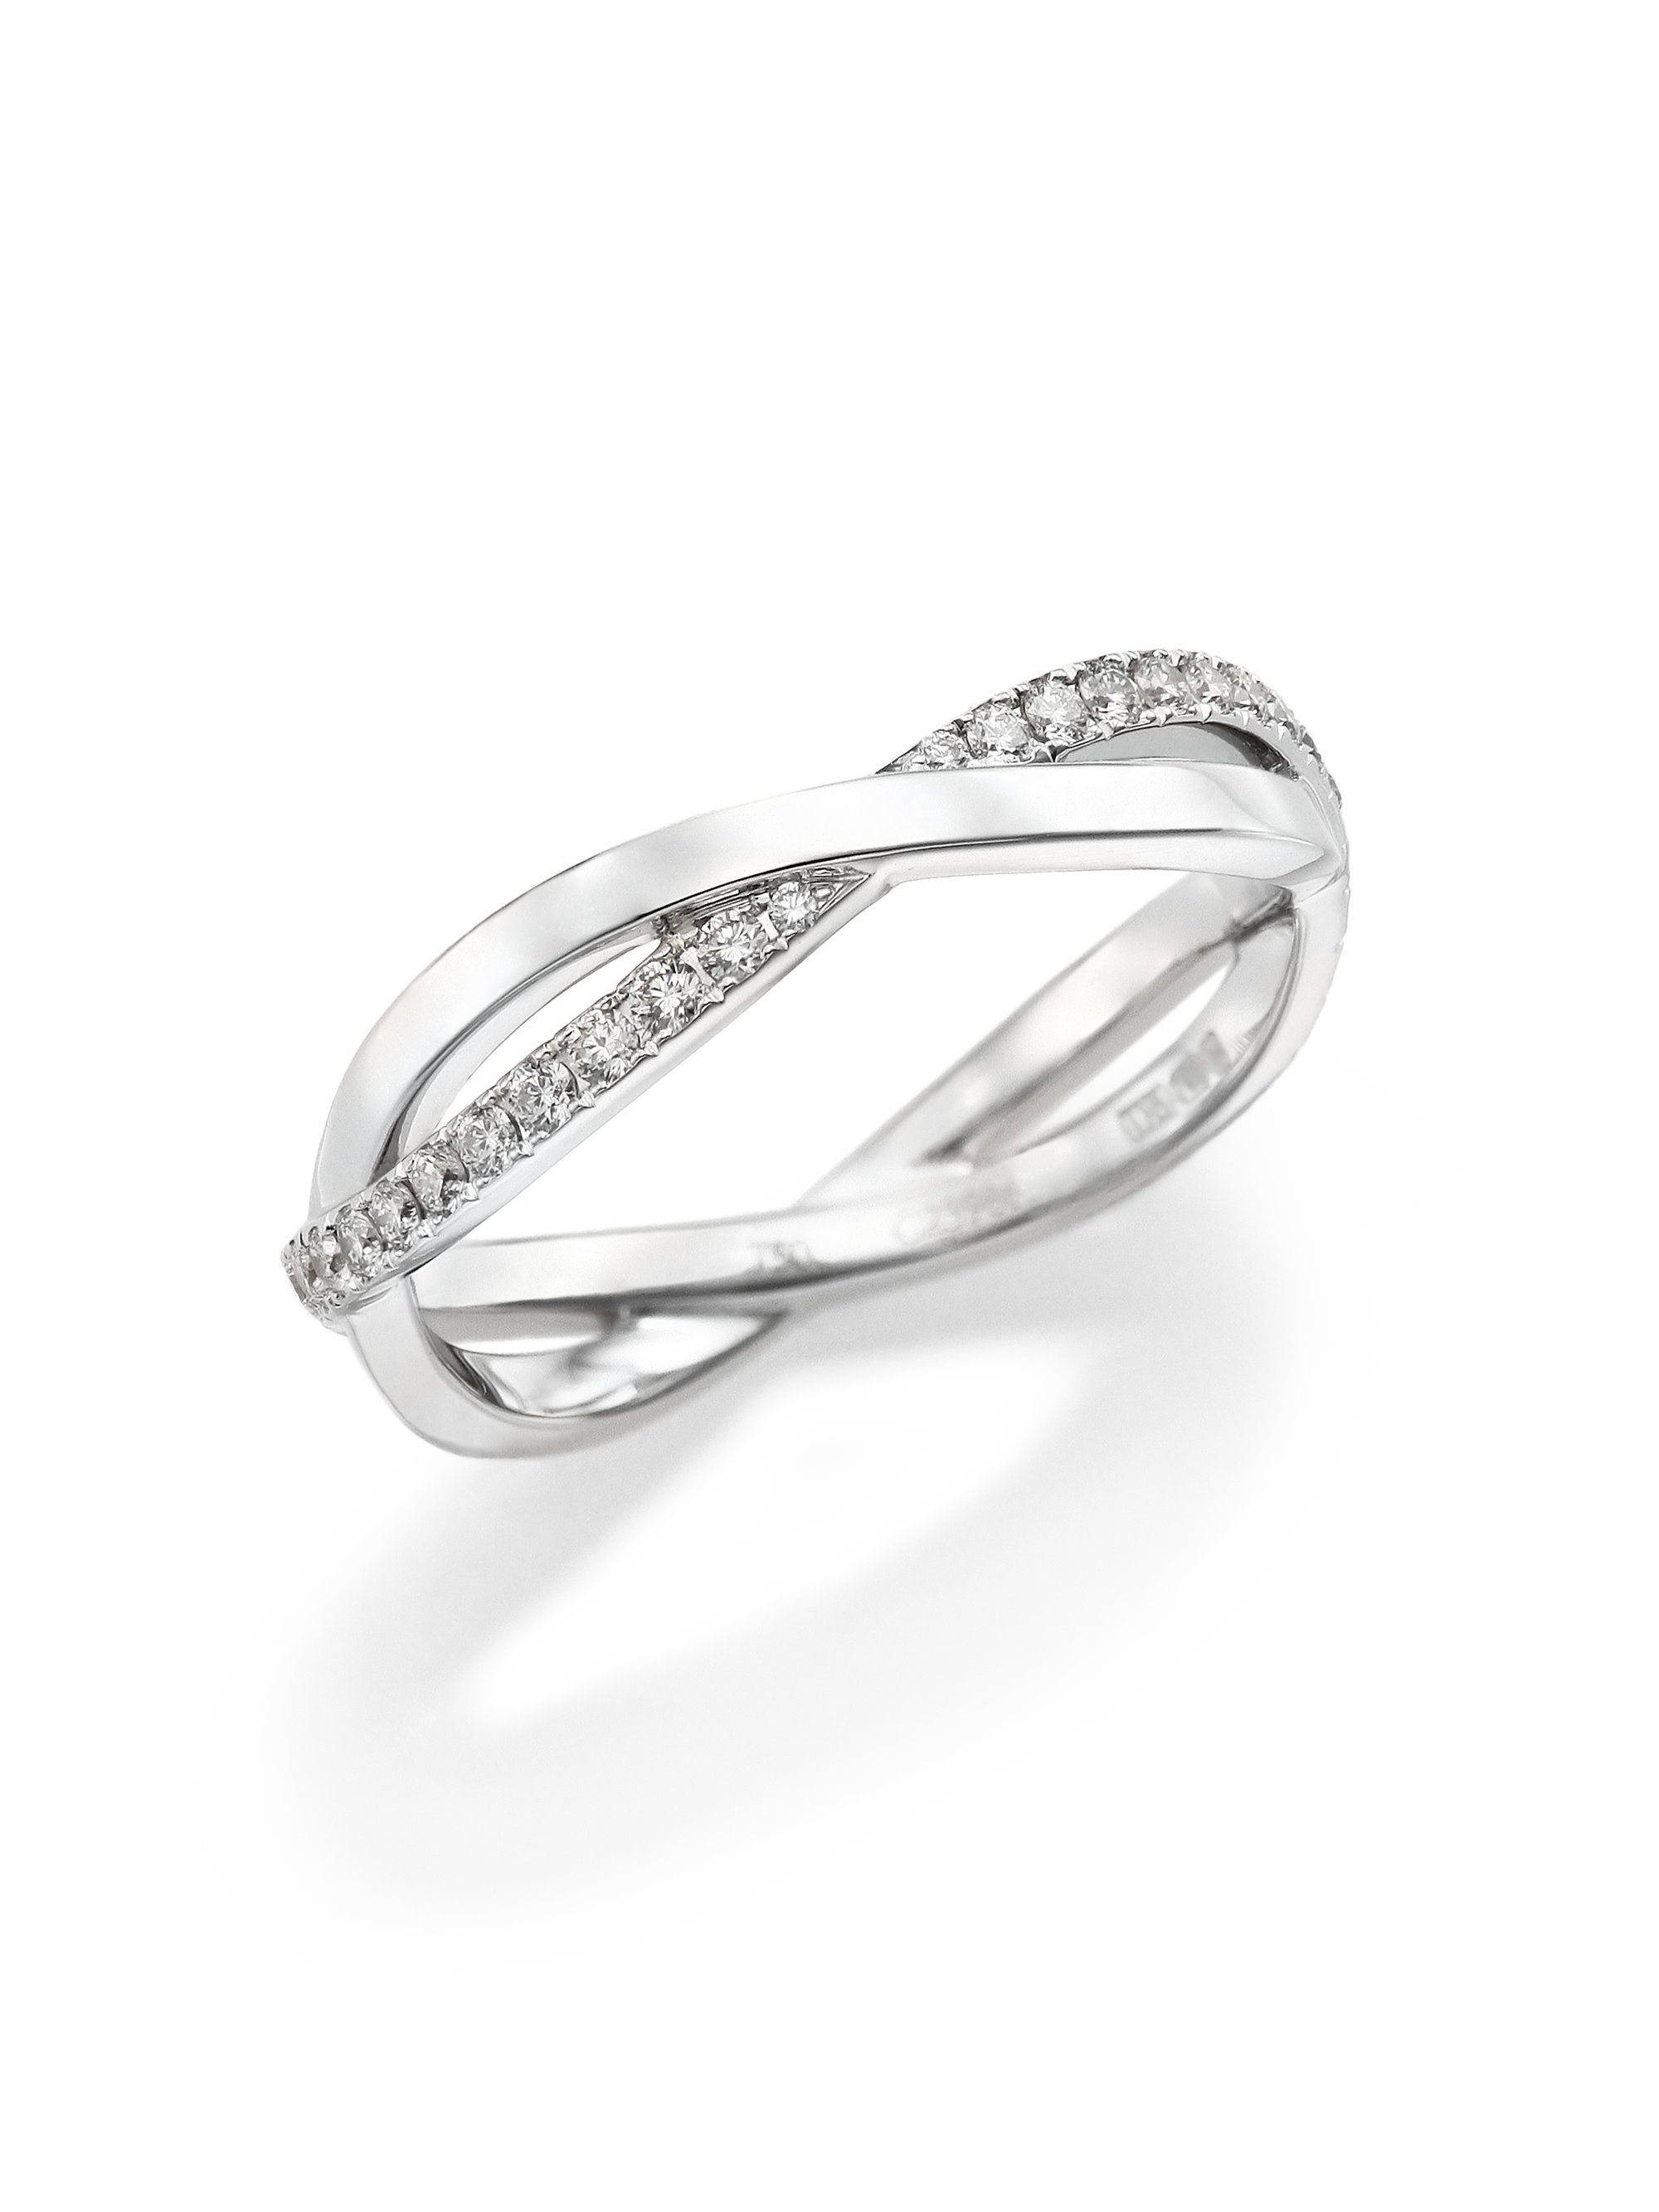 Womenus infinity diamond u k white gold half band ring マリッジ